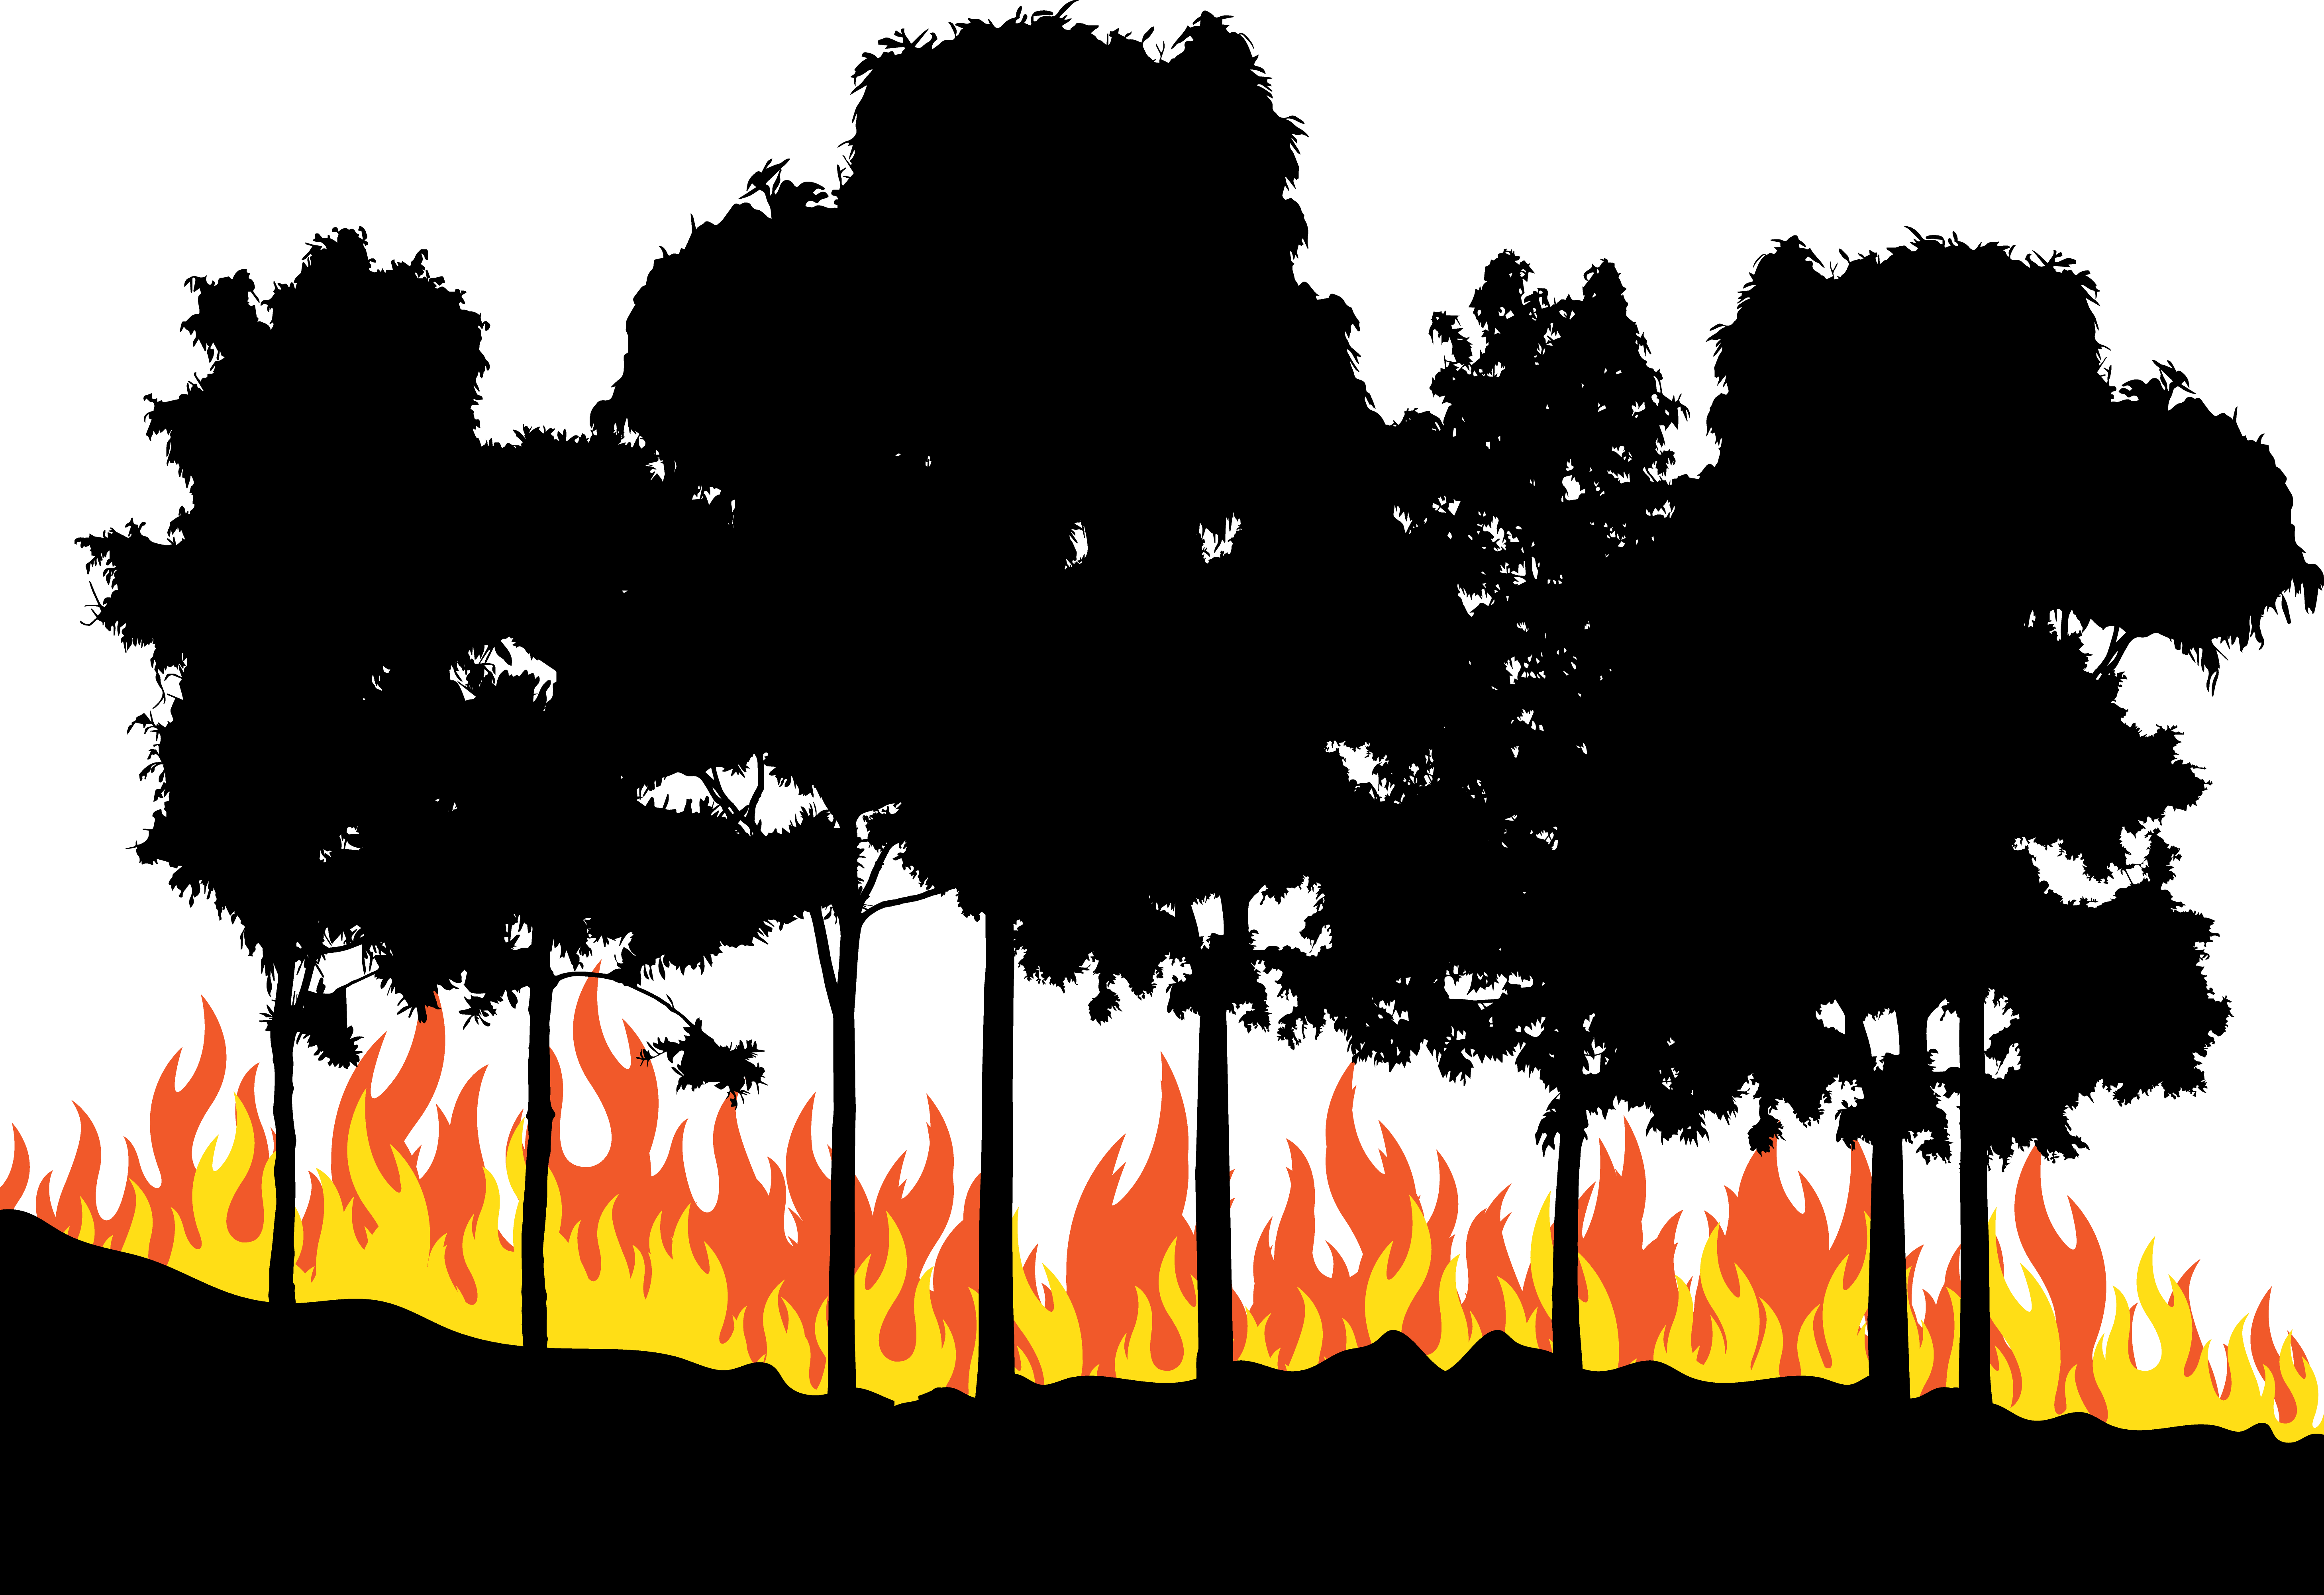 People dancing in the forest around fire clipart jpg download Fire Euclidean vector - Fire in the woods png download ... jpg download